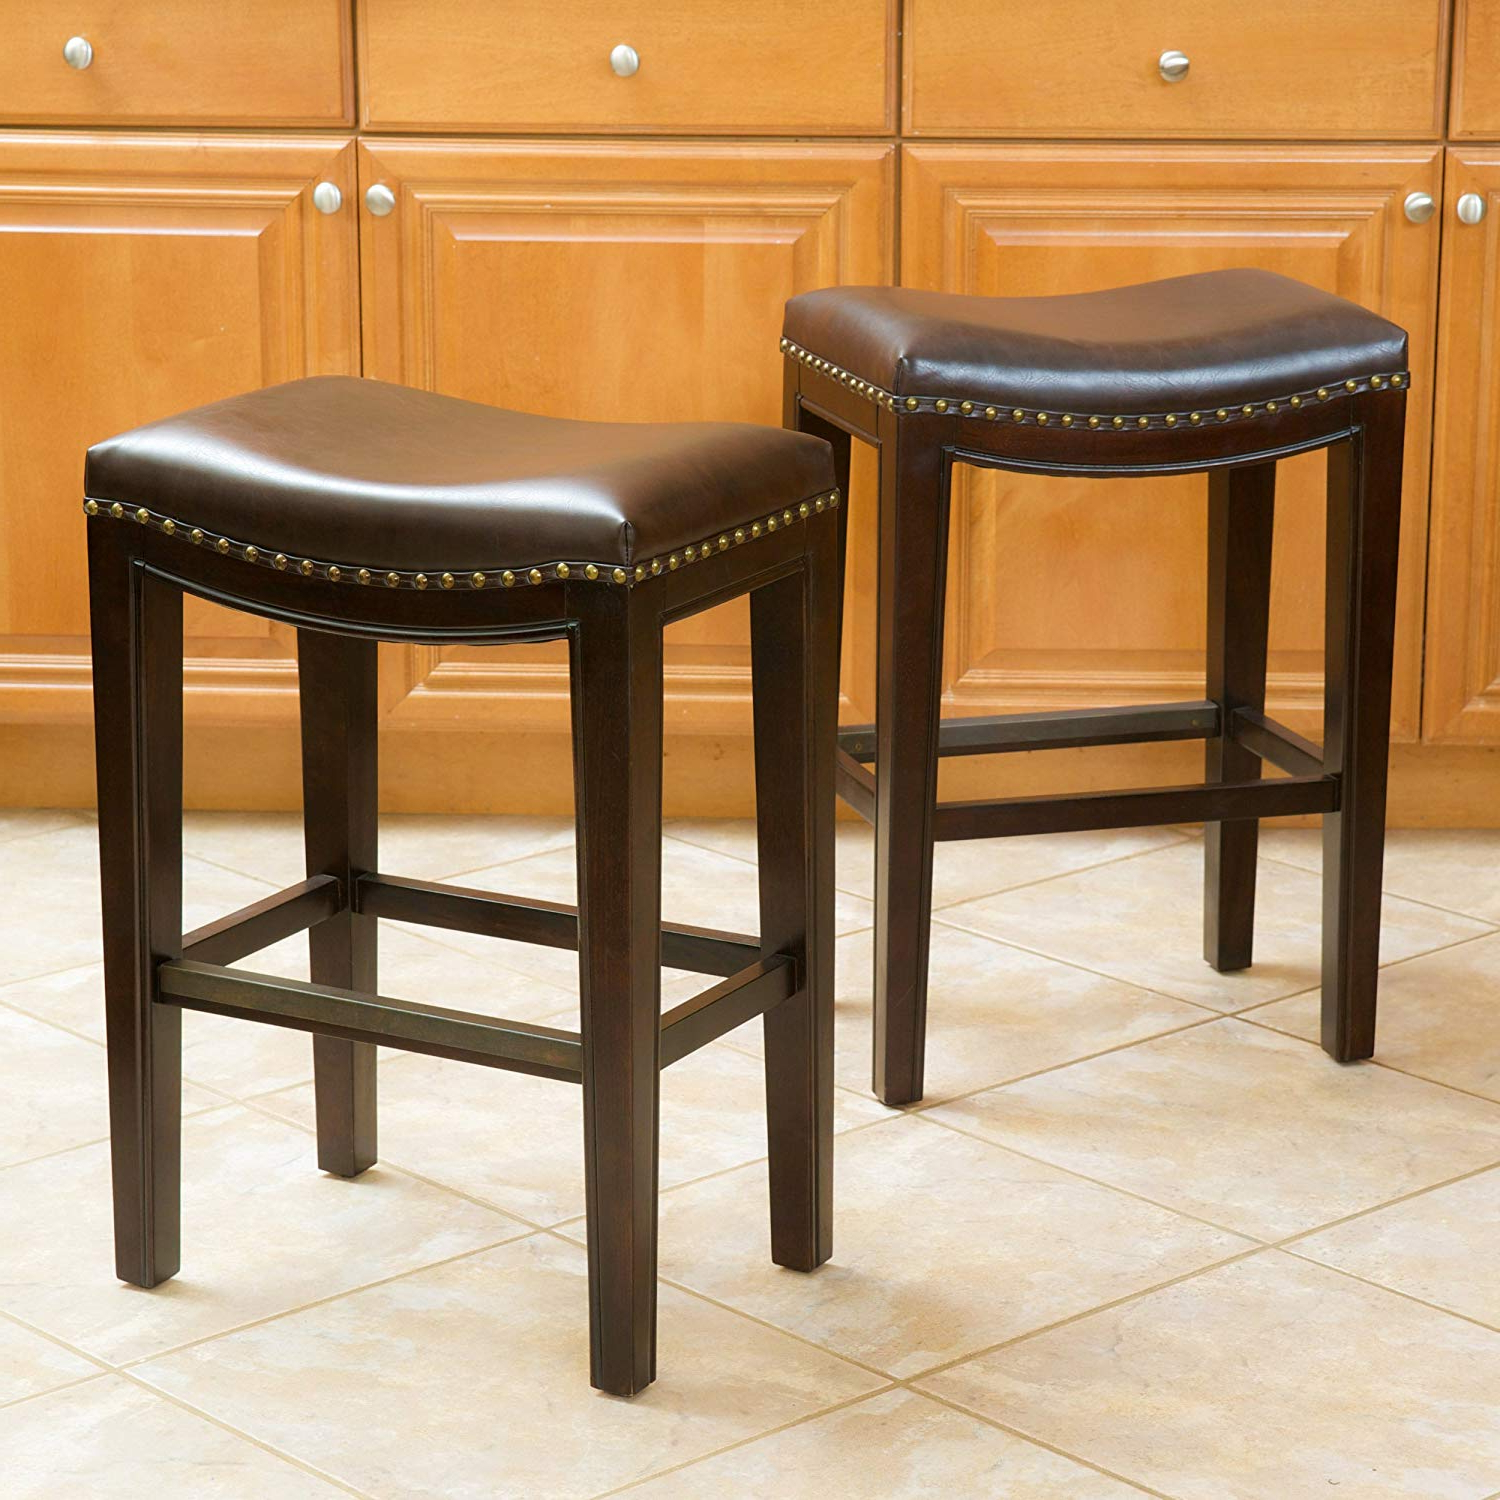 2020 Avondale Counter-Height Dining Tables regarding Amazon: Christopher Knight Home Avondale Counter Stool